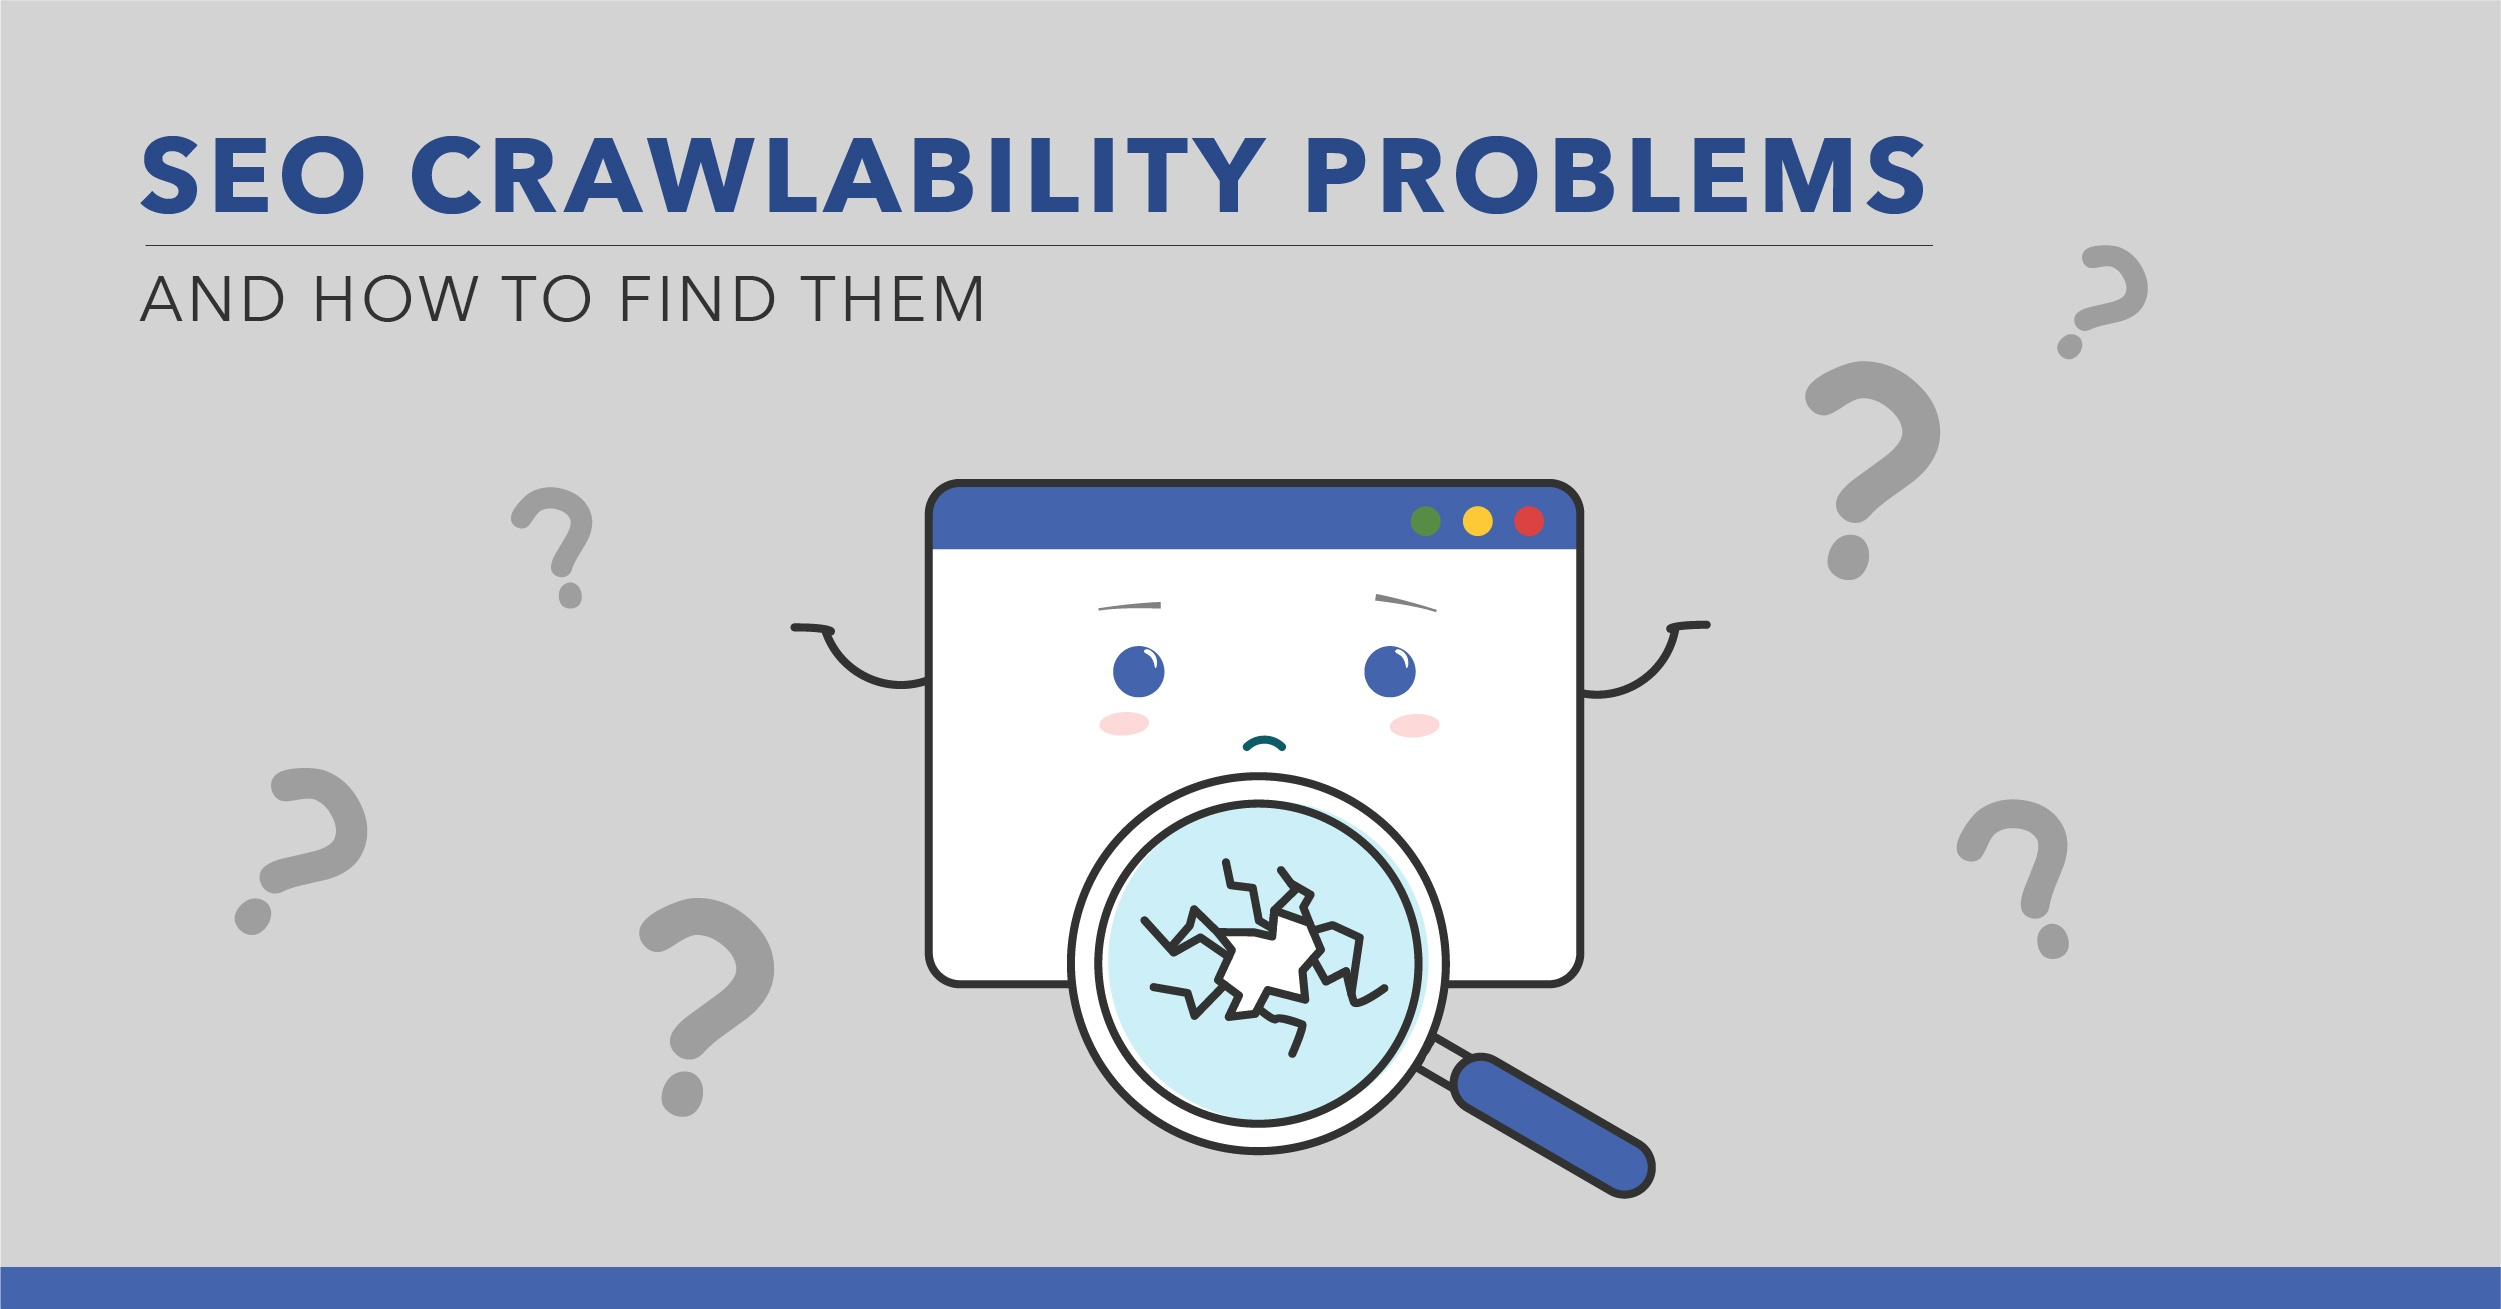 SEO Crawlability Problems and How to Find Them